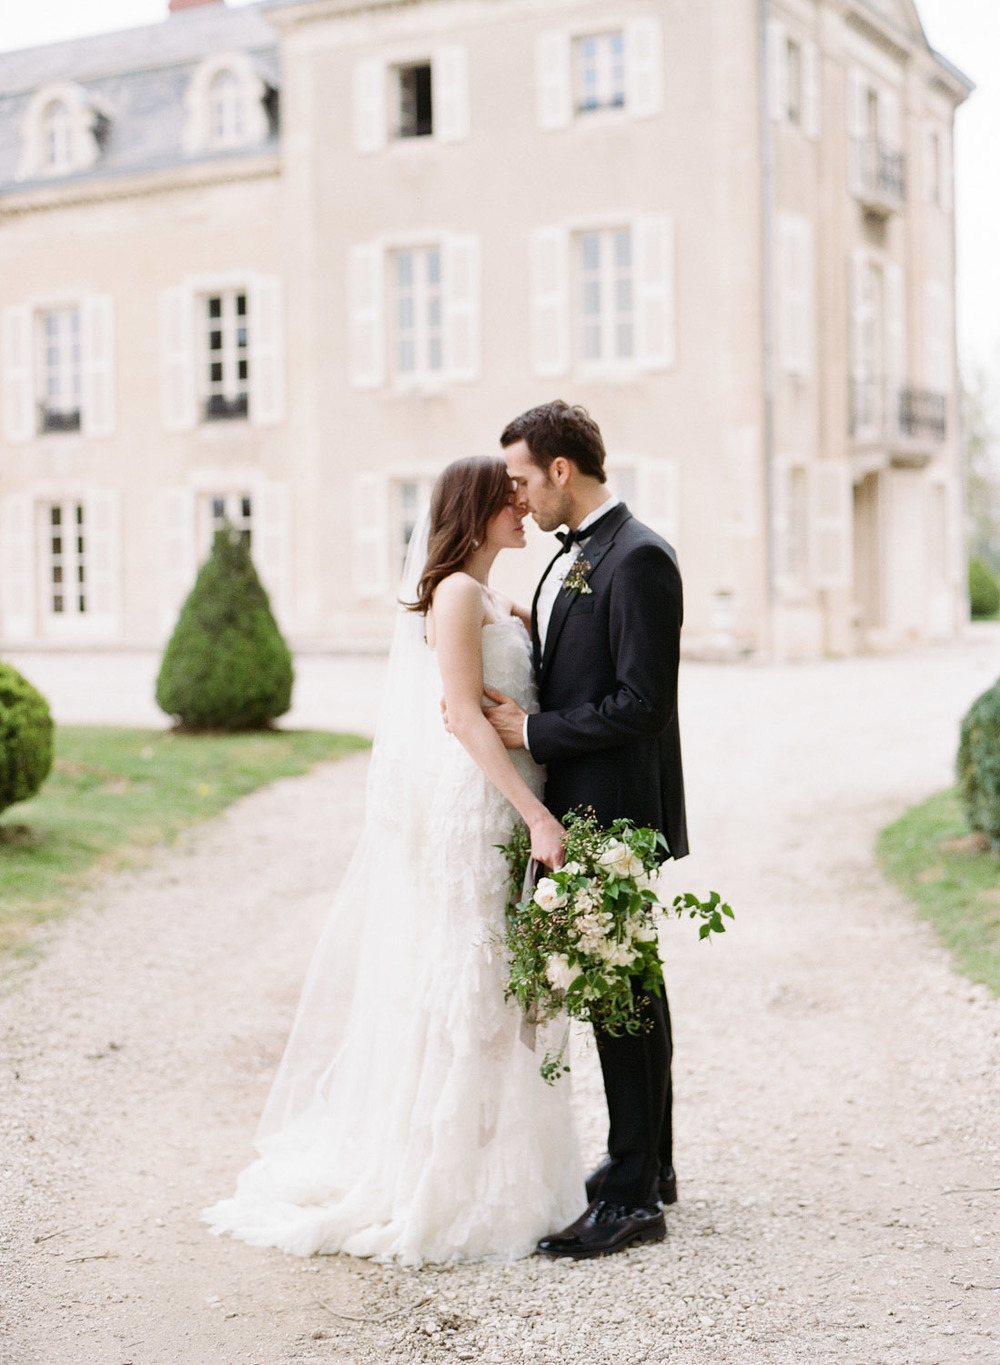 The groom holds his bride, dressed in a fluttery Oscar de la Renta gown, close, outside the chateau in Burgundy; photo by Sylvie Gil